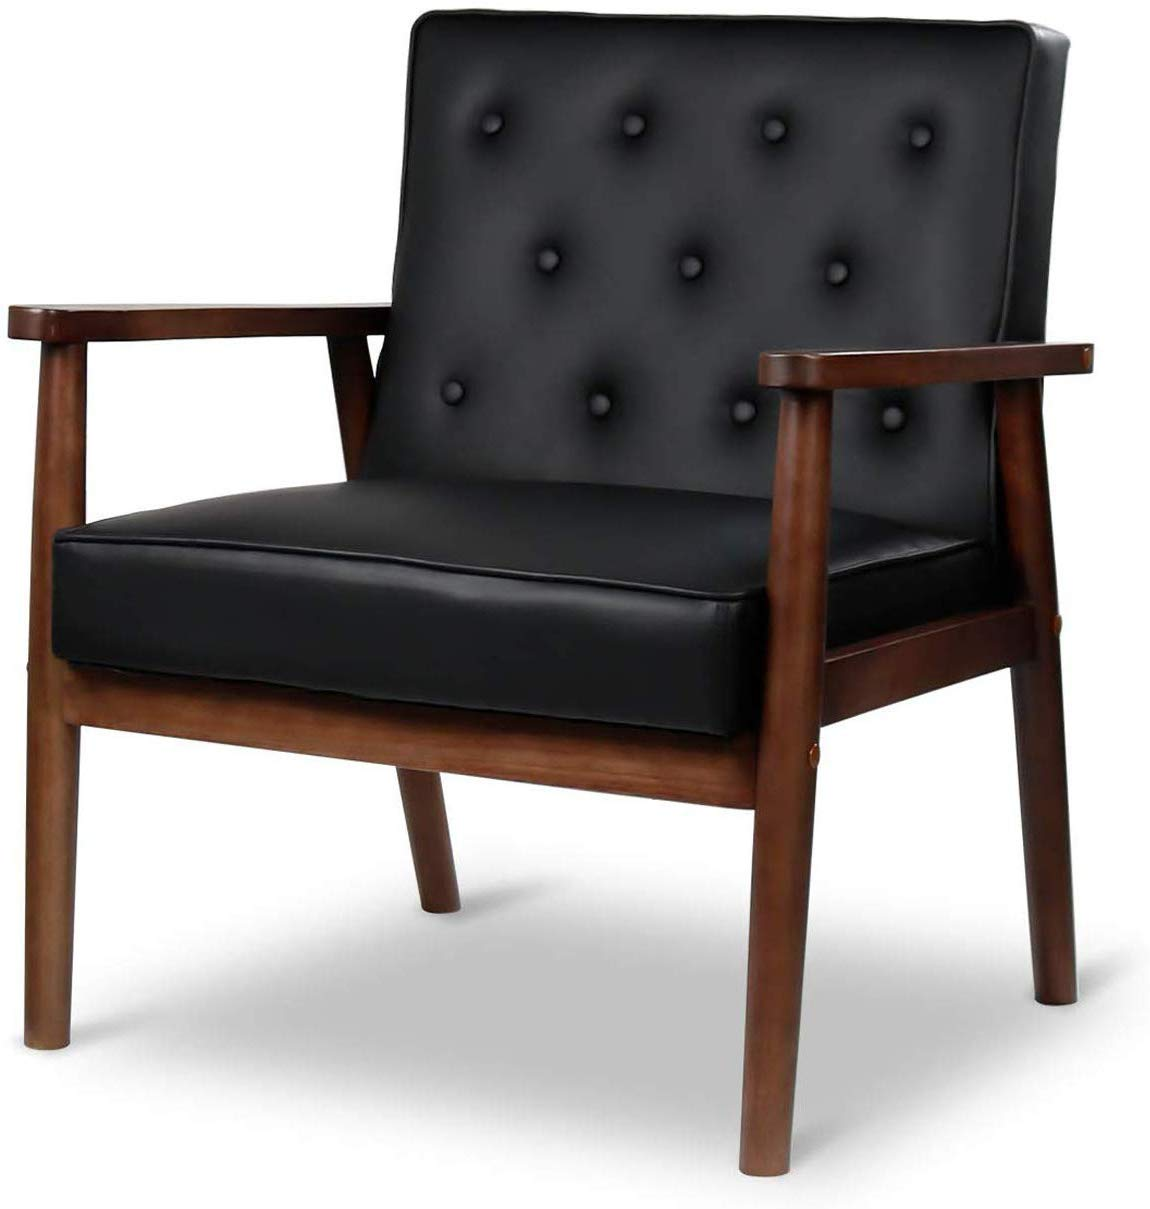 JOYBASE Mid-Century Retro Modern Accent Chair - Wood Frame and PU Leather Upholstered, Arm Chair for Living Room (Black) by JOYBASE